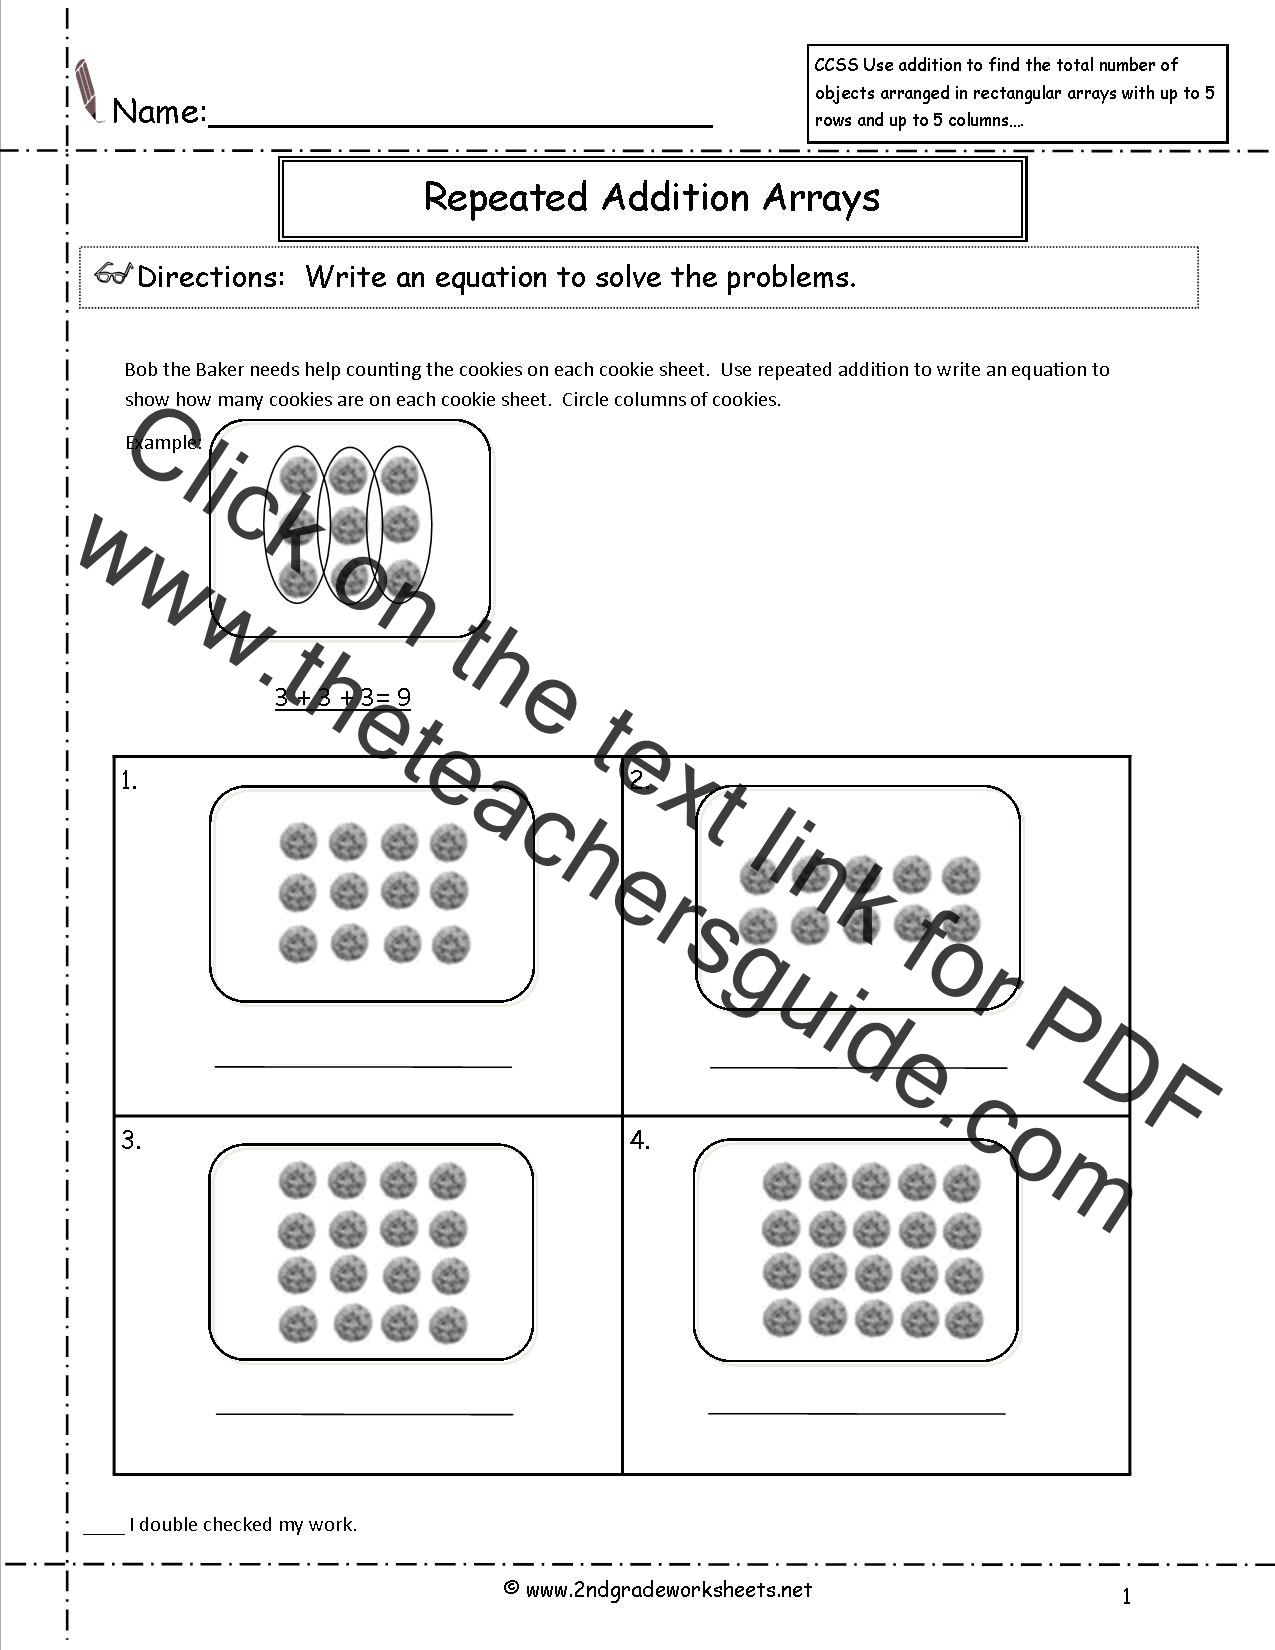 Printables 3rd Grade Math Common Core Worksheets 2nd grade math common core state standards worksheets oa 4 worksheets